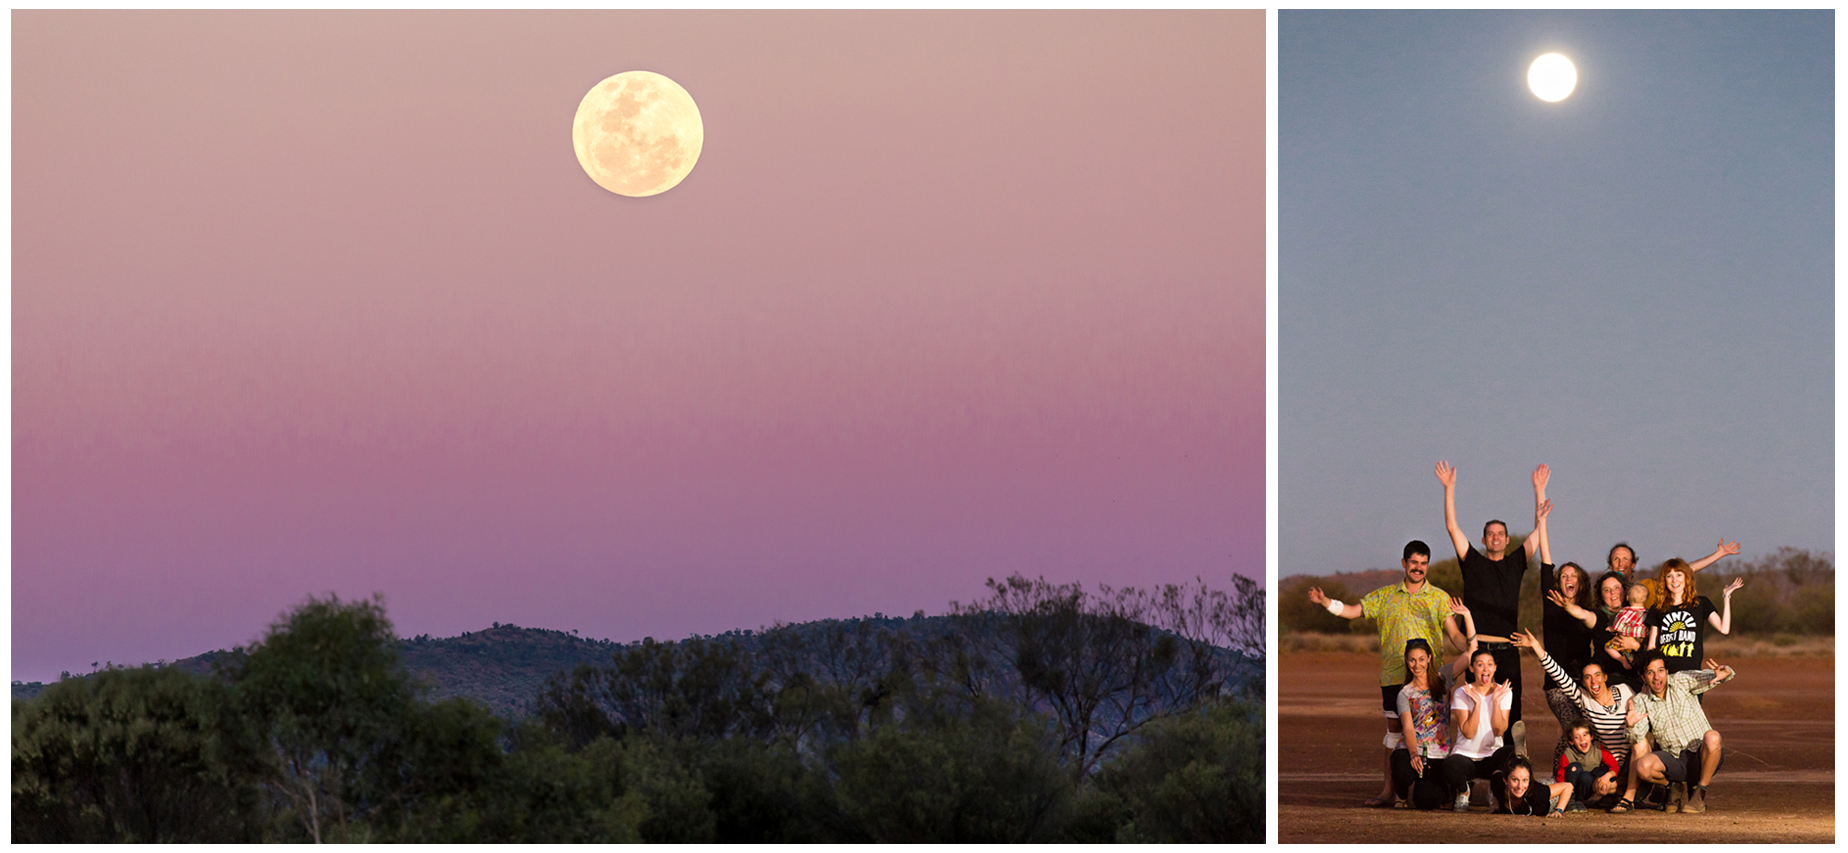 The biggest moon in fifty years rising over the red centre